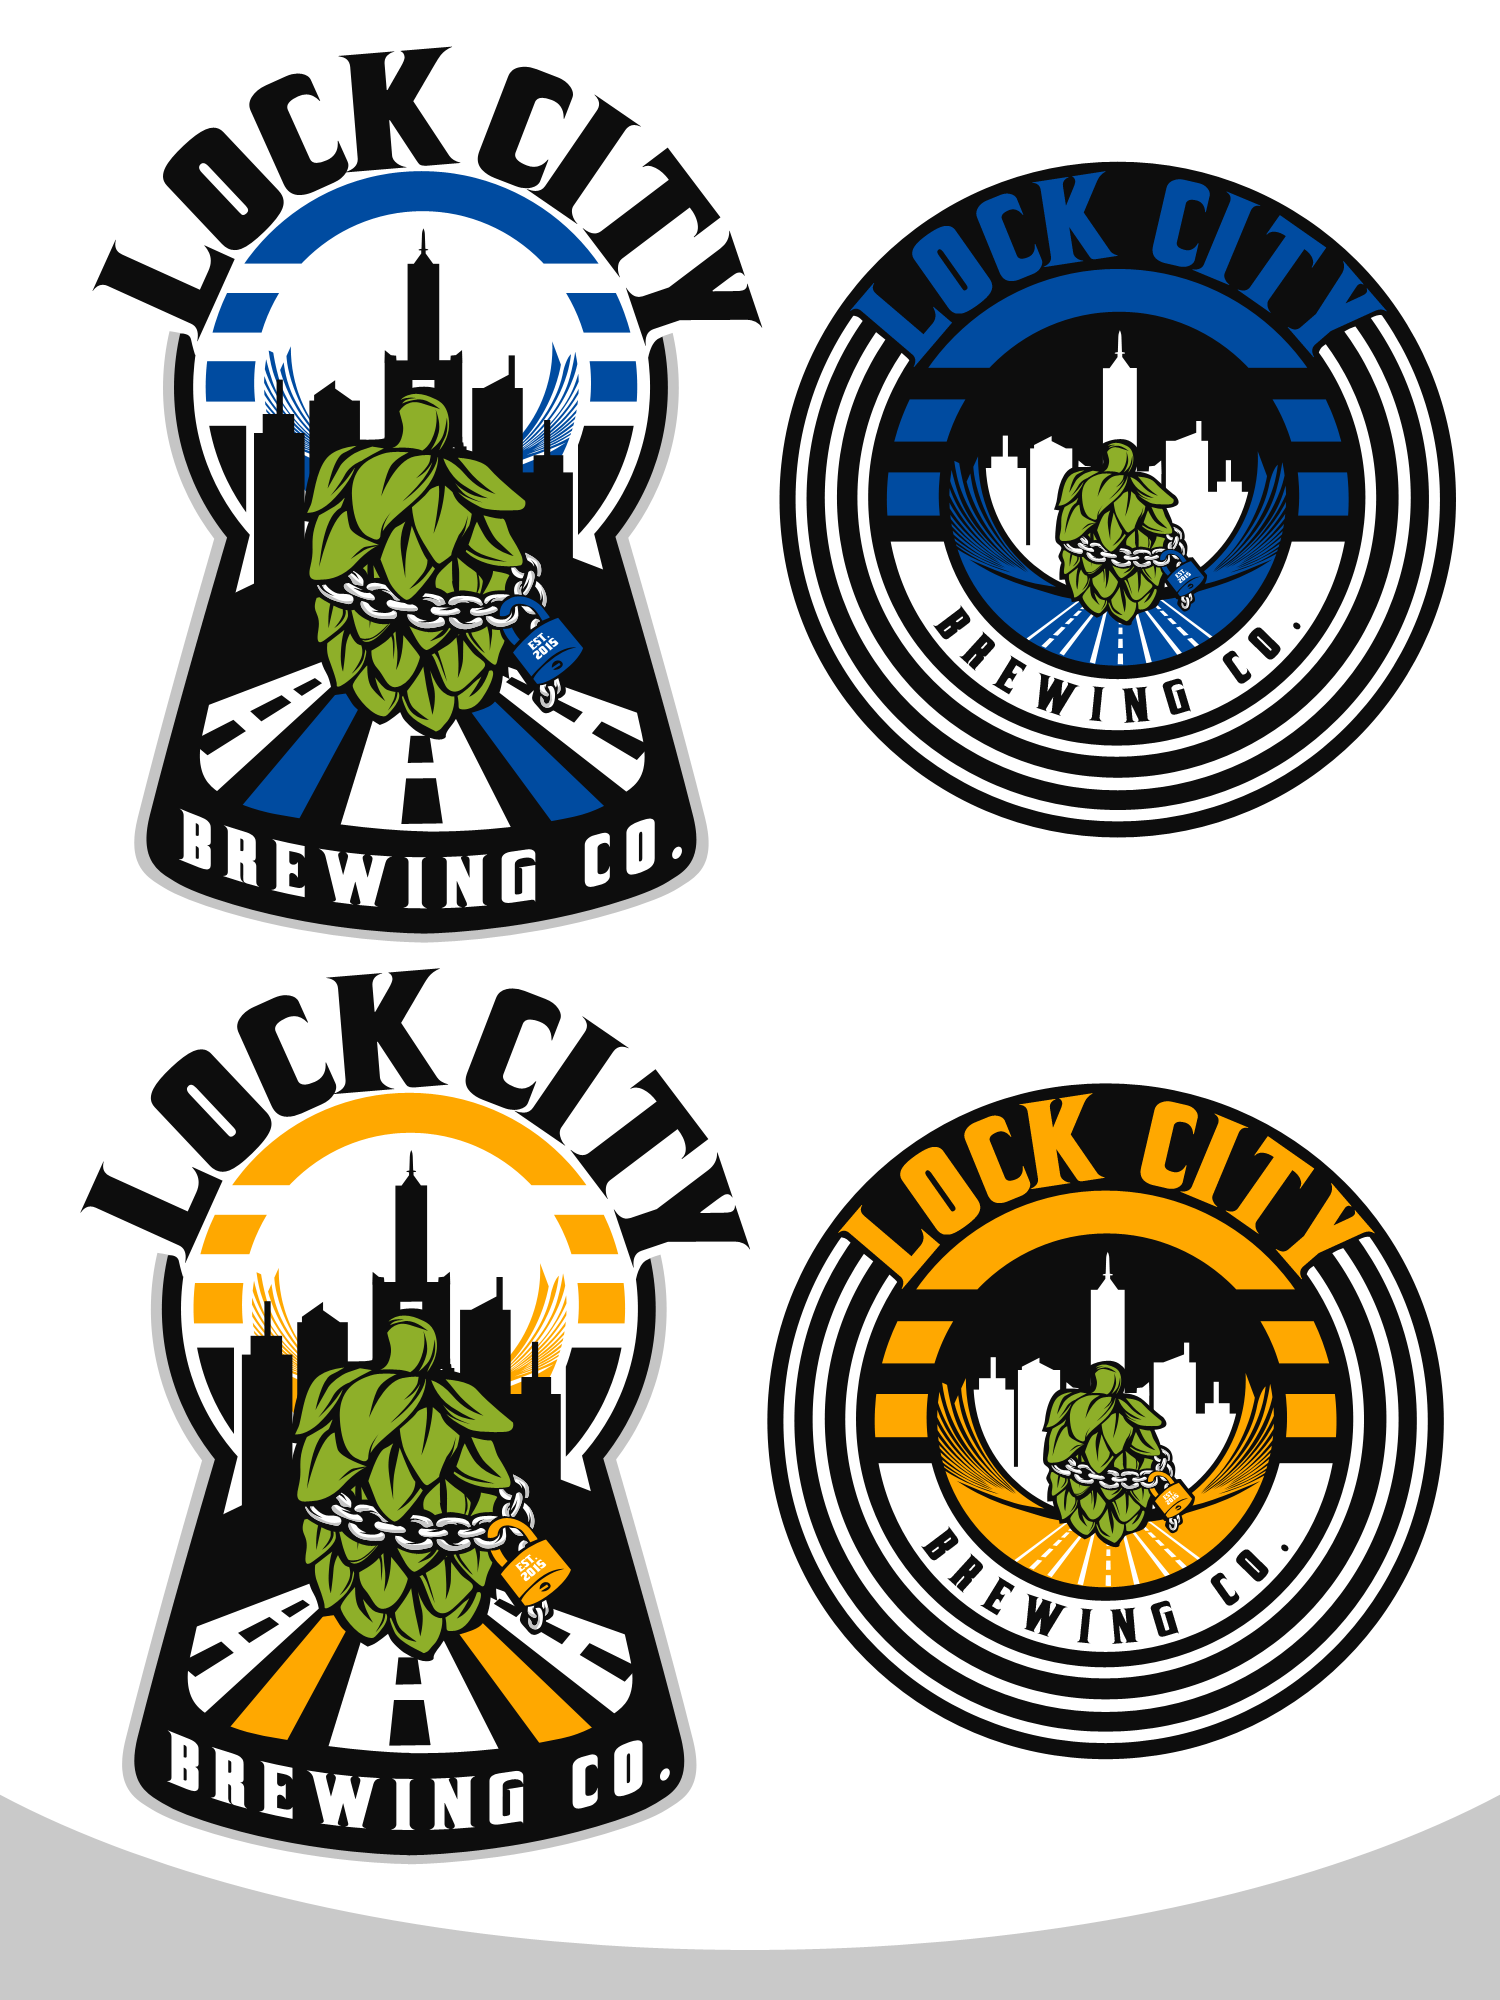 Lock City Brewing Co.